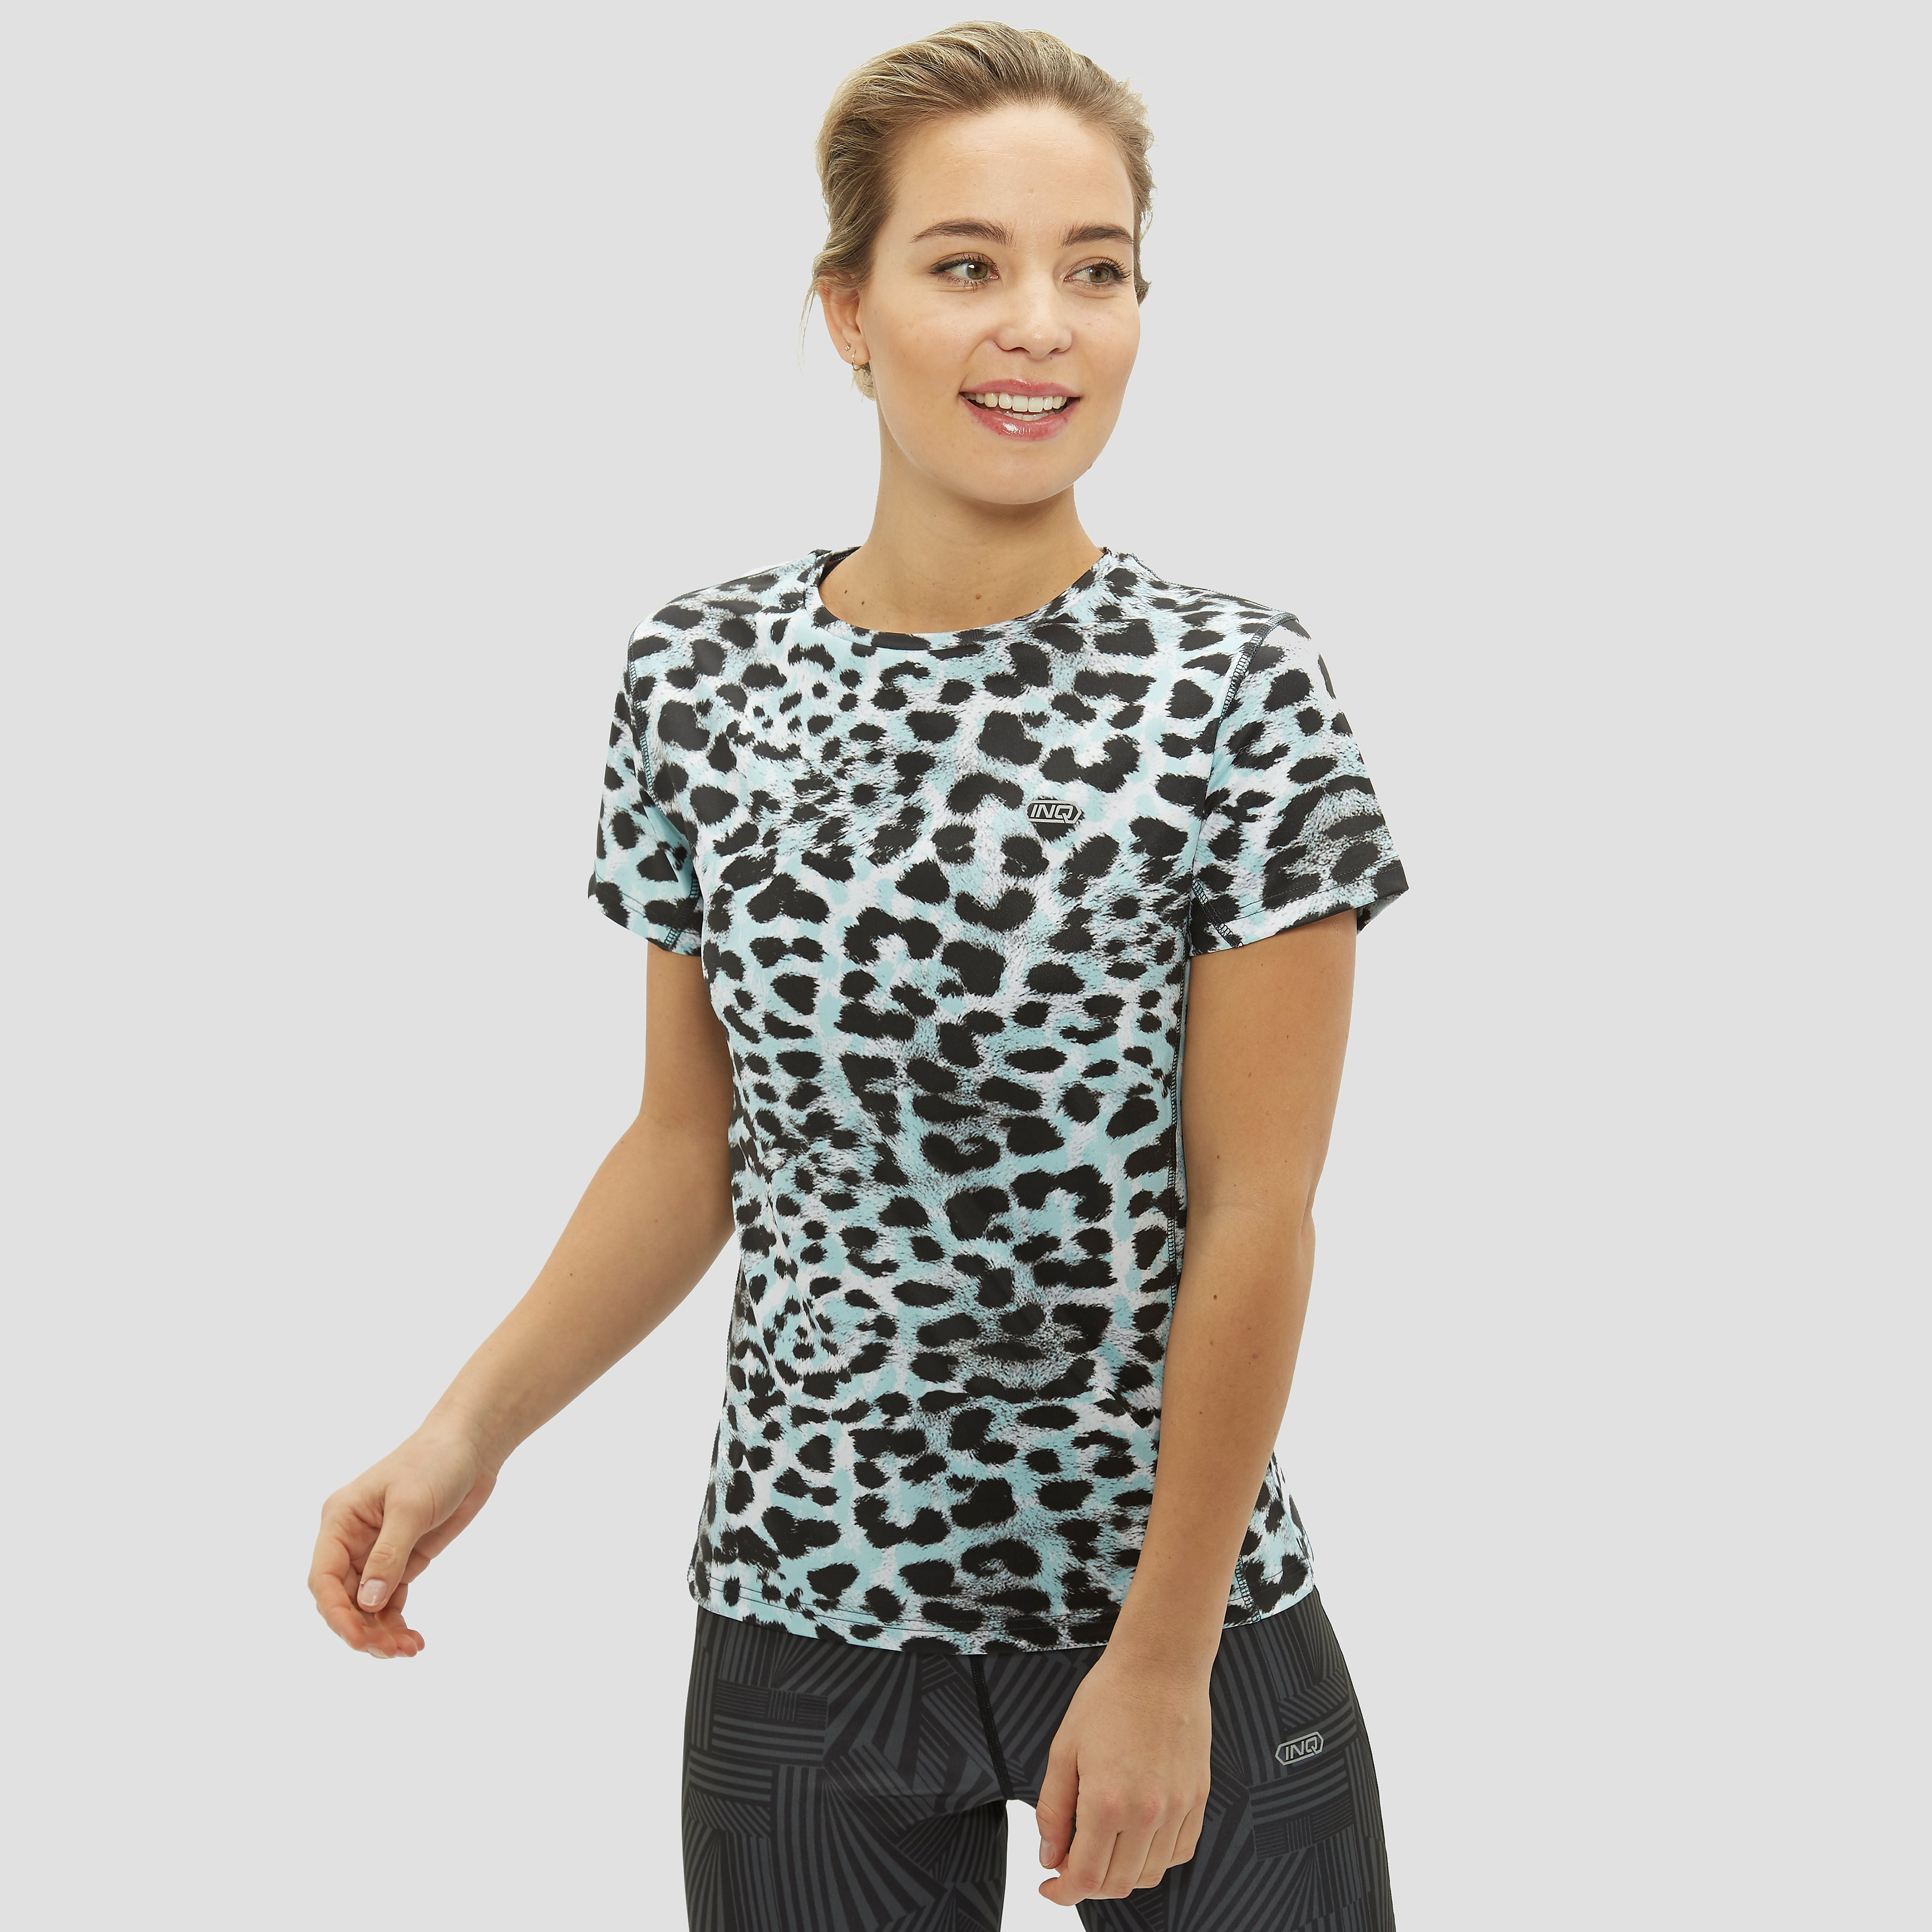 INQ SONNET PRINTED CROPPED HARDLOOPSHIRT BLAUW DAMES